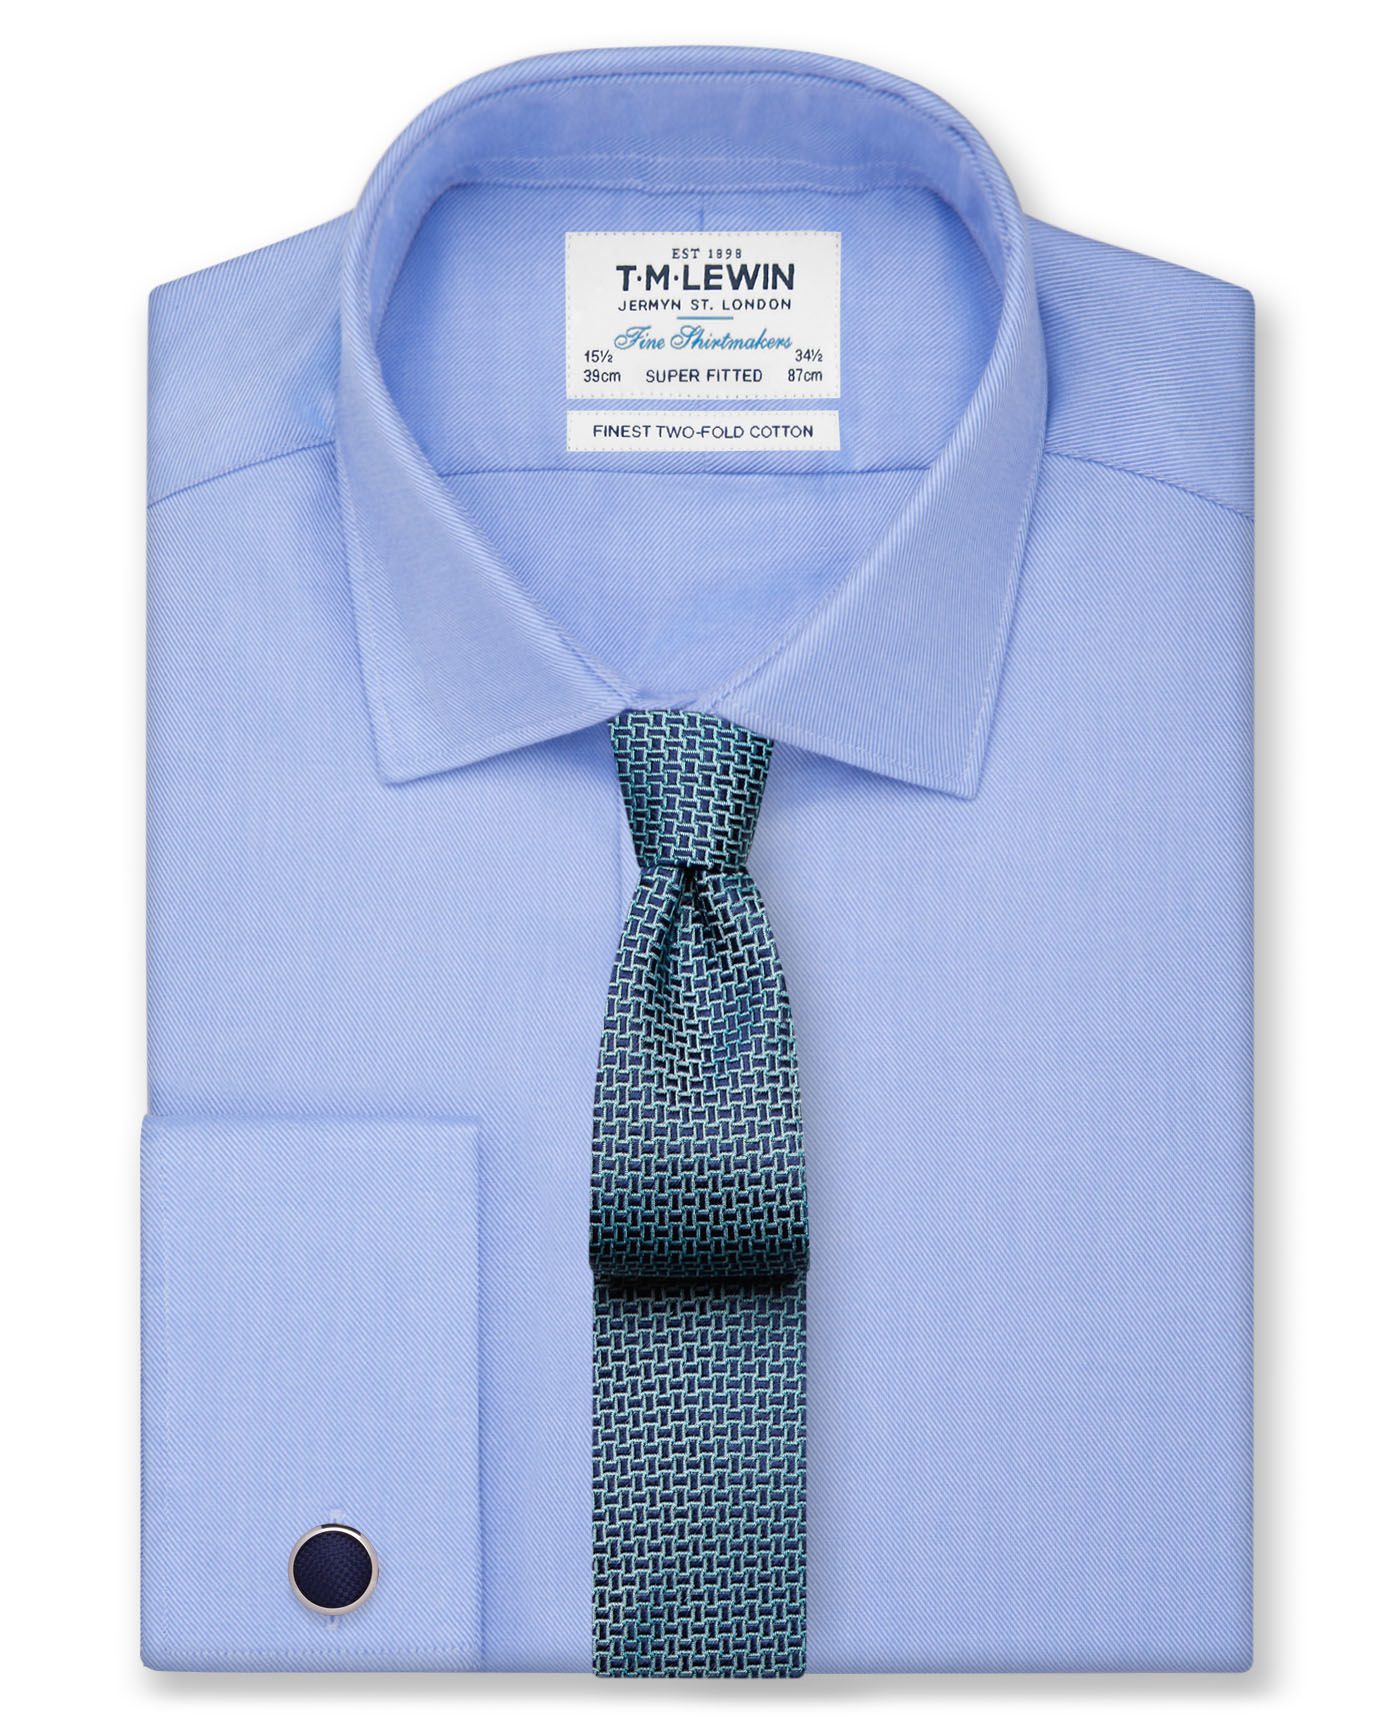 T.M.Lewin Super Fitted Blue Twill Double Cuff Shirt